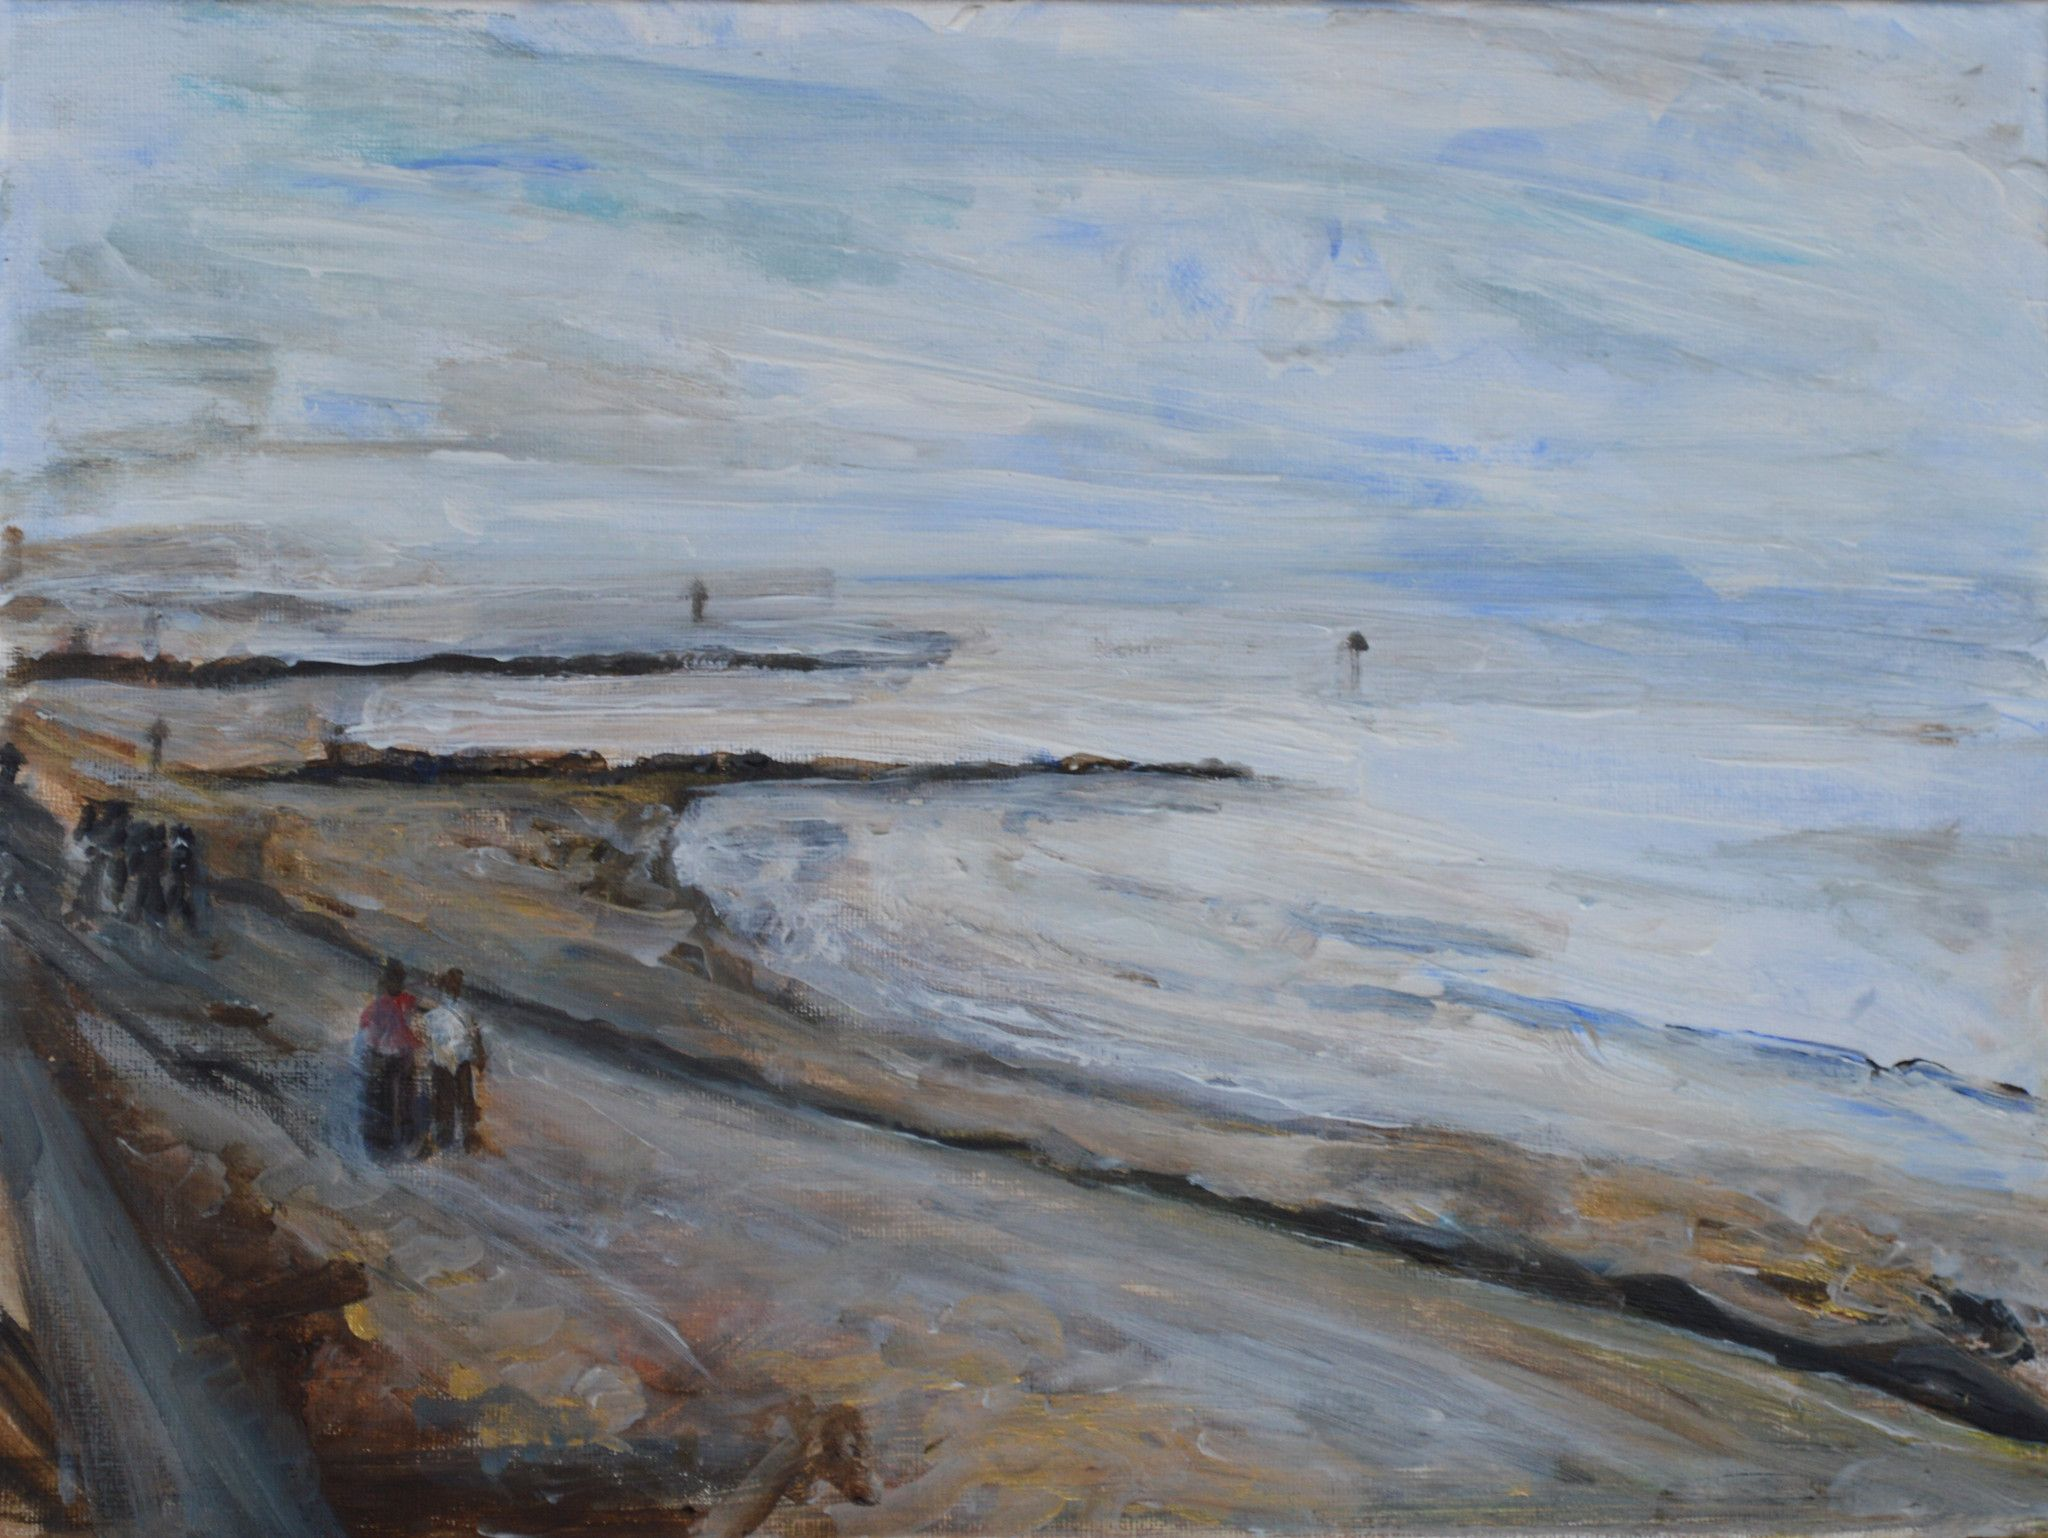 """PRESTATYN EVENING, original painting 12"""" X 16"""" by Ali Jackson, CURVES, original painting 20"""" X 24"""" by Ali Jackson, captures the simplicity, charm and character of ordinary events, people and places that relate to Ali's home in Wales."""